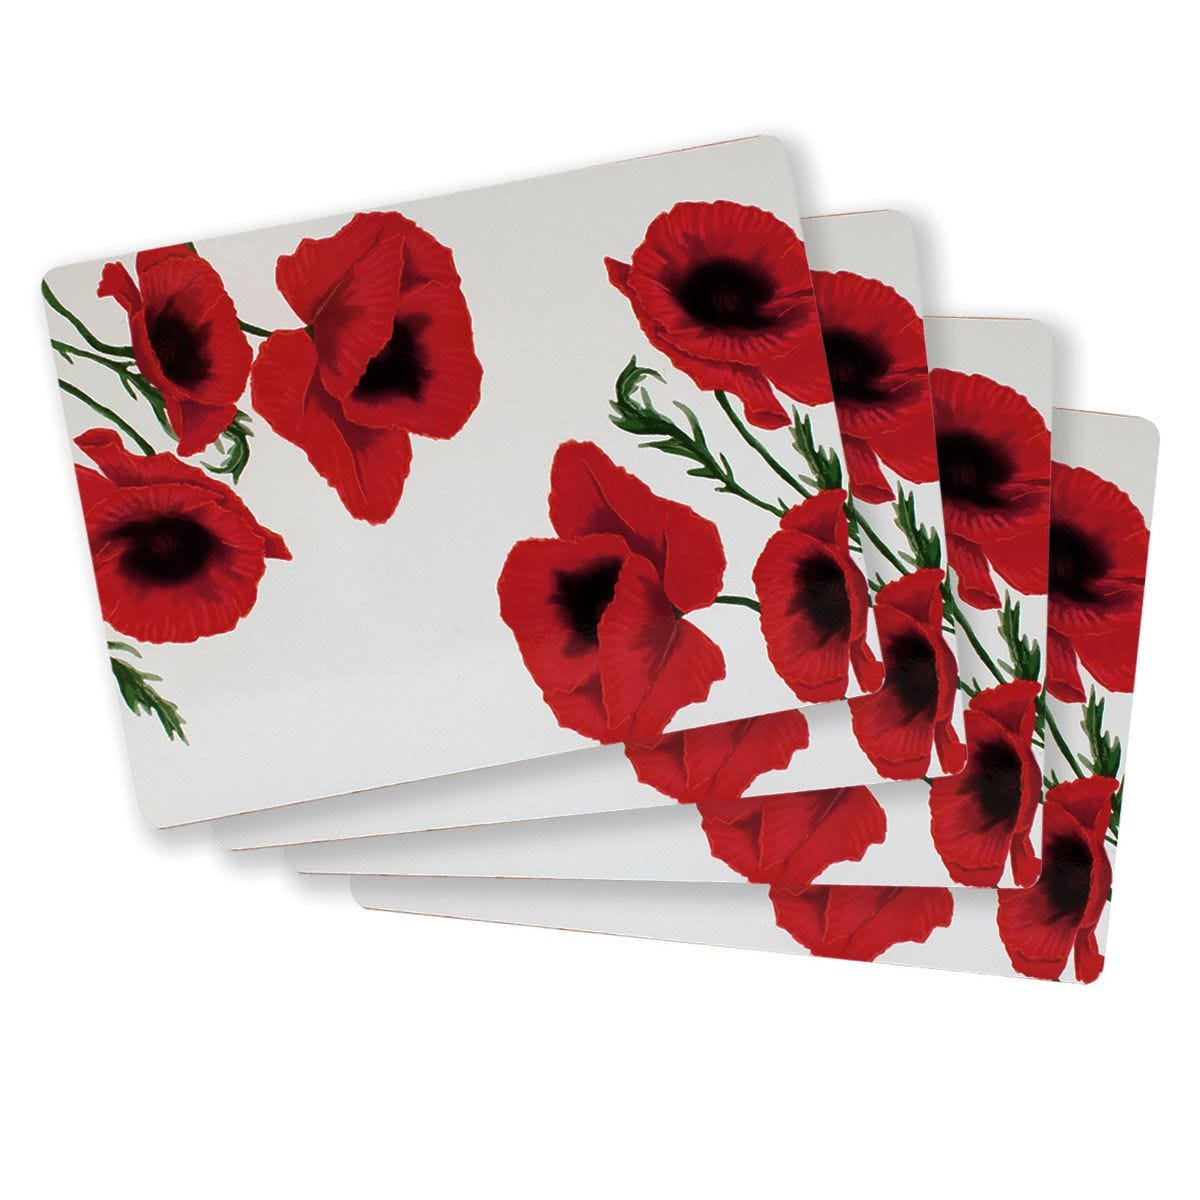 Poppy Placemats - Set Of 4